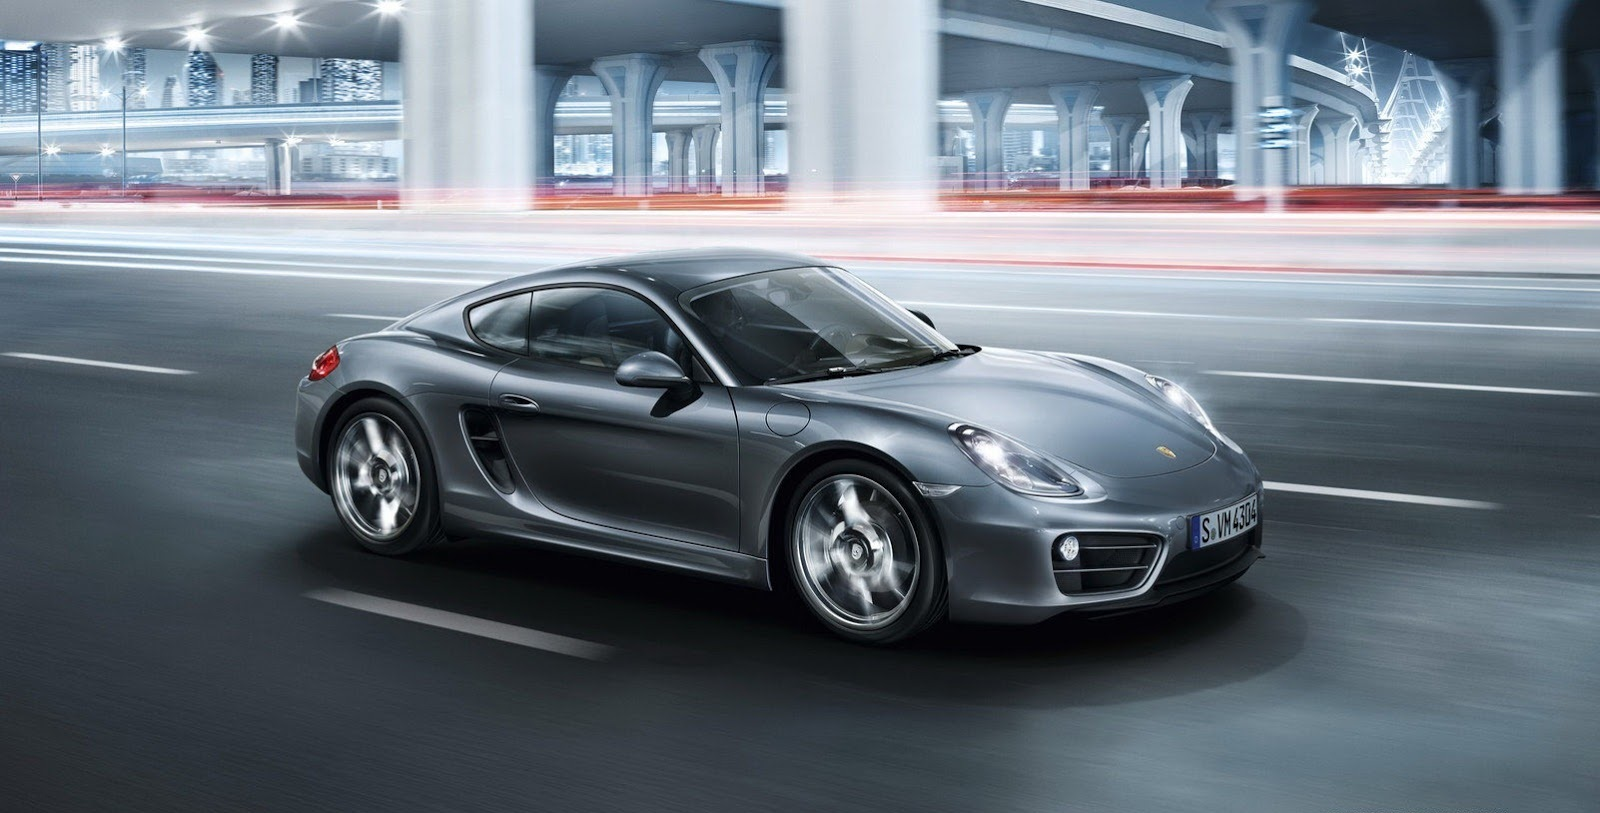 Nancys Car Designs 2014 Porsche Cayman